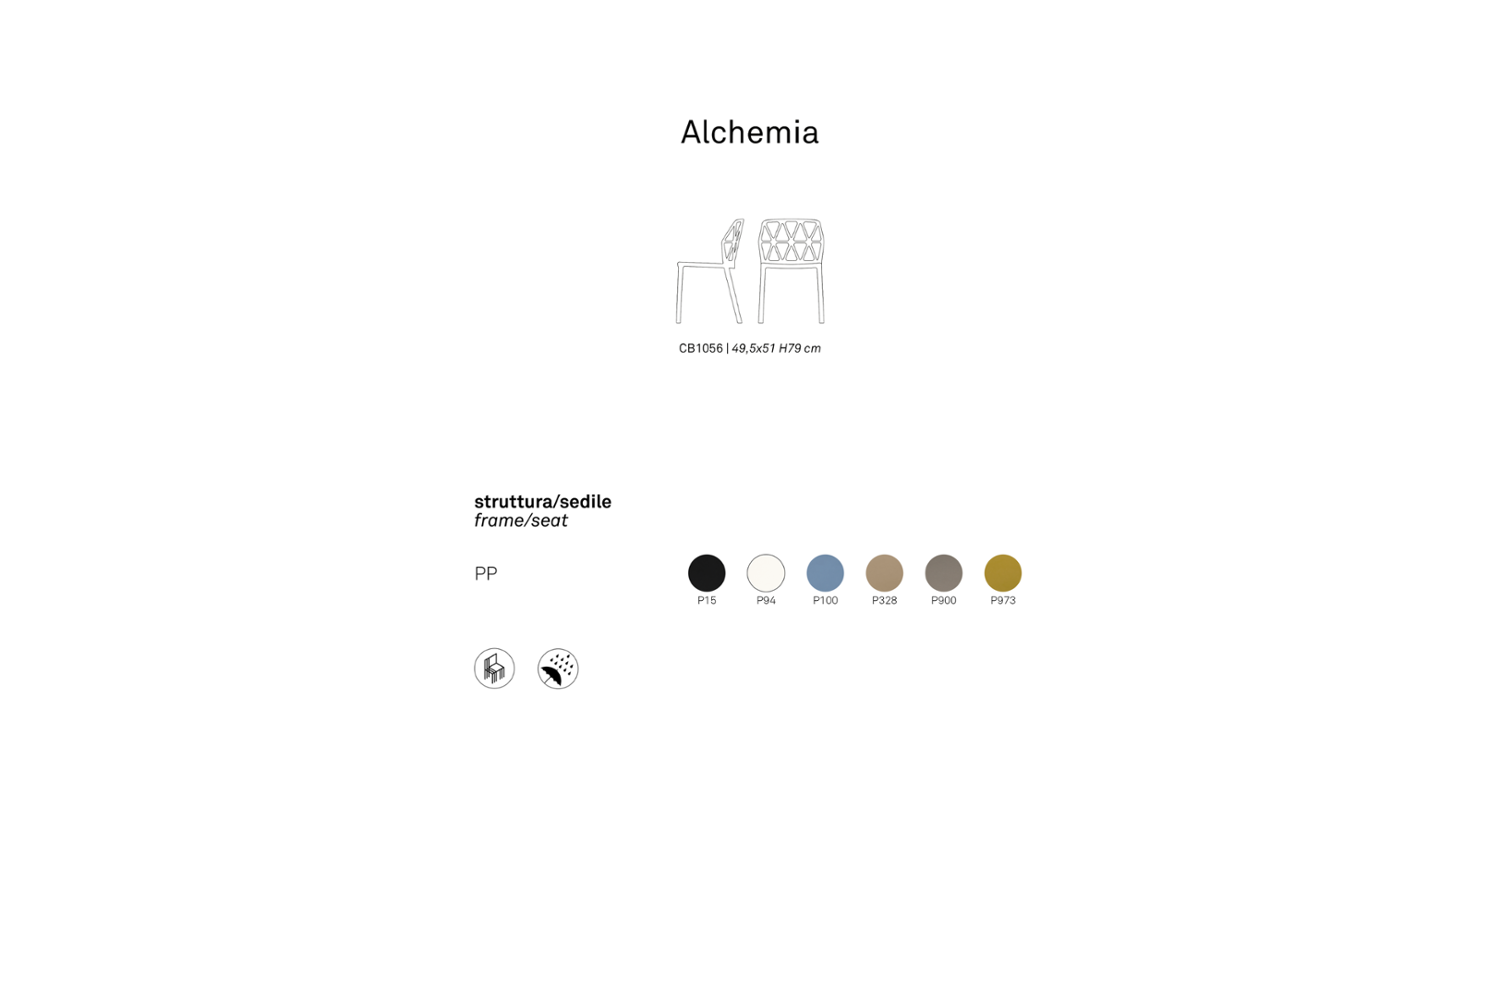 ALCHEMY SCHEMATIC CONNUBIA ALCHEMY SCHEMATIC CONNUBIA.png connubia schematic dining armchair seating 2020